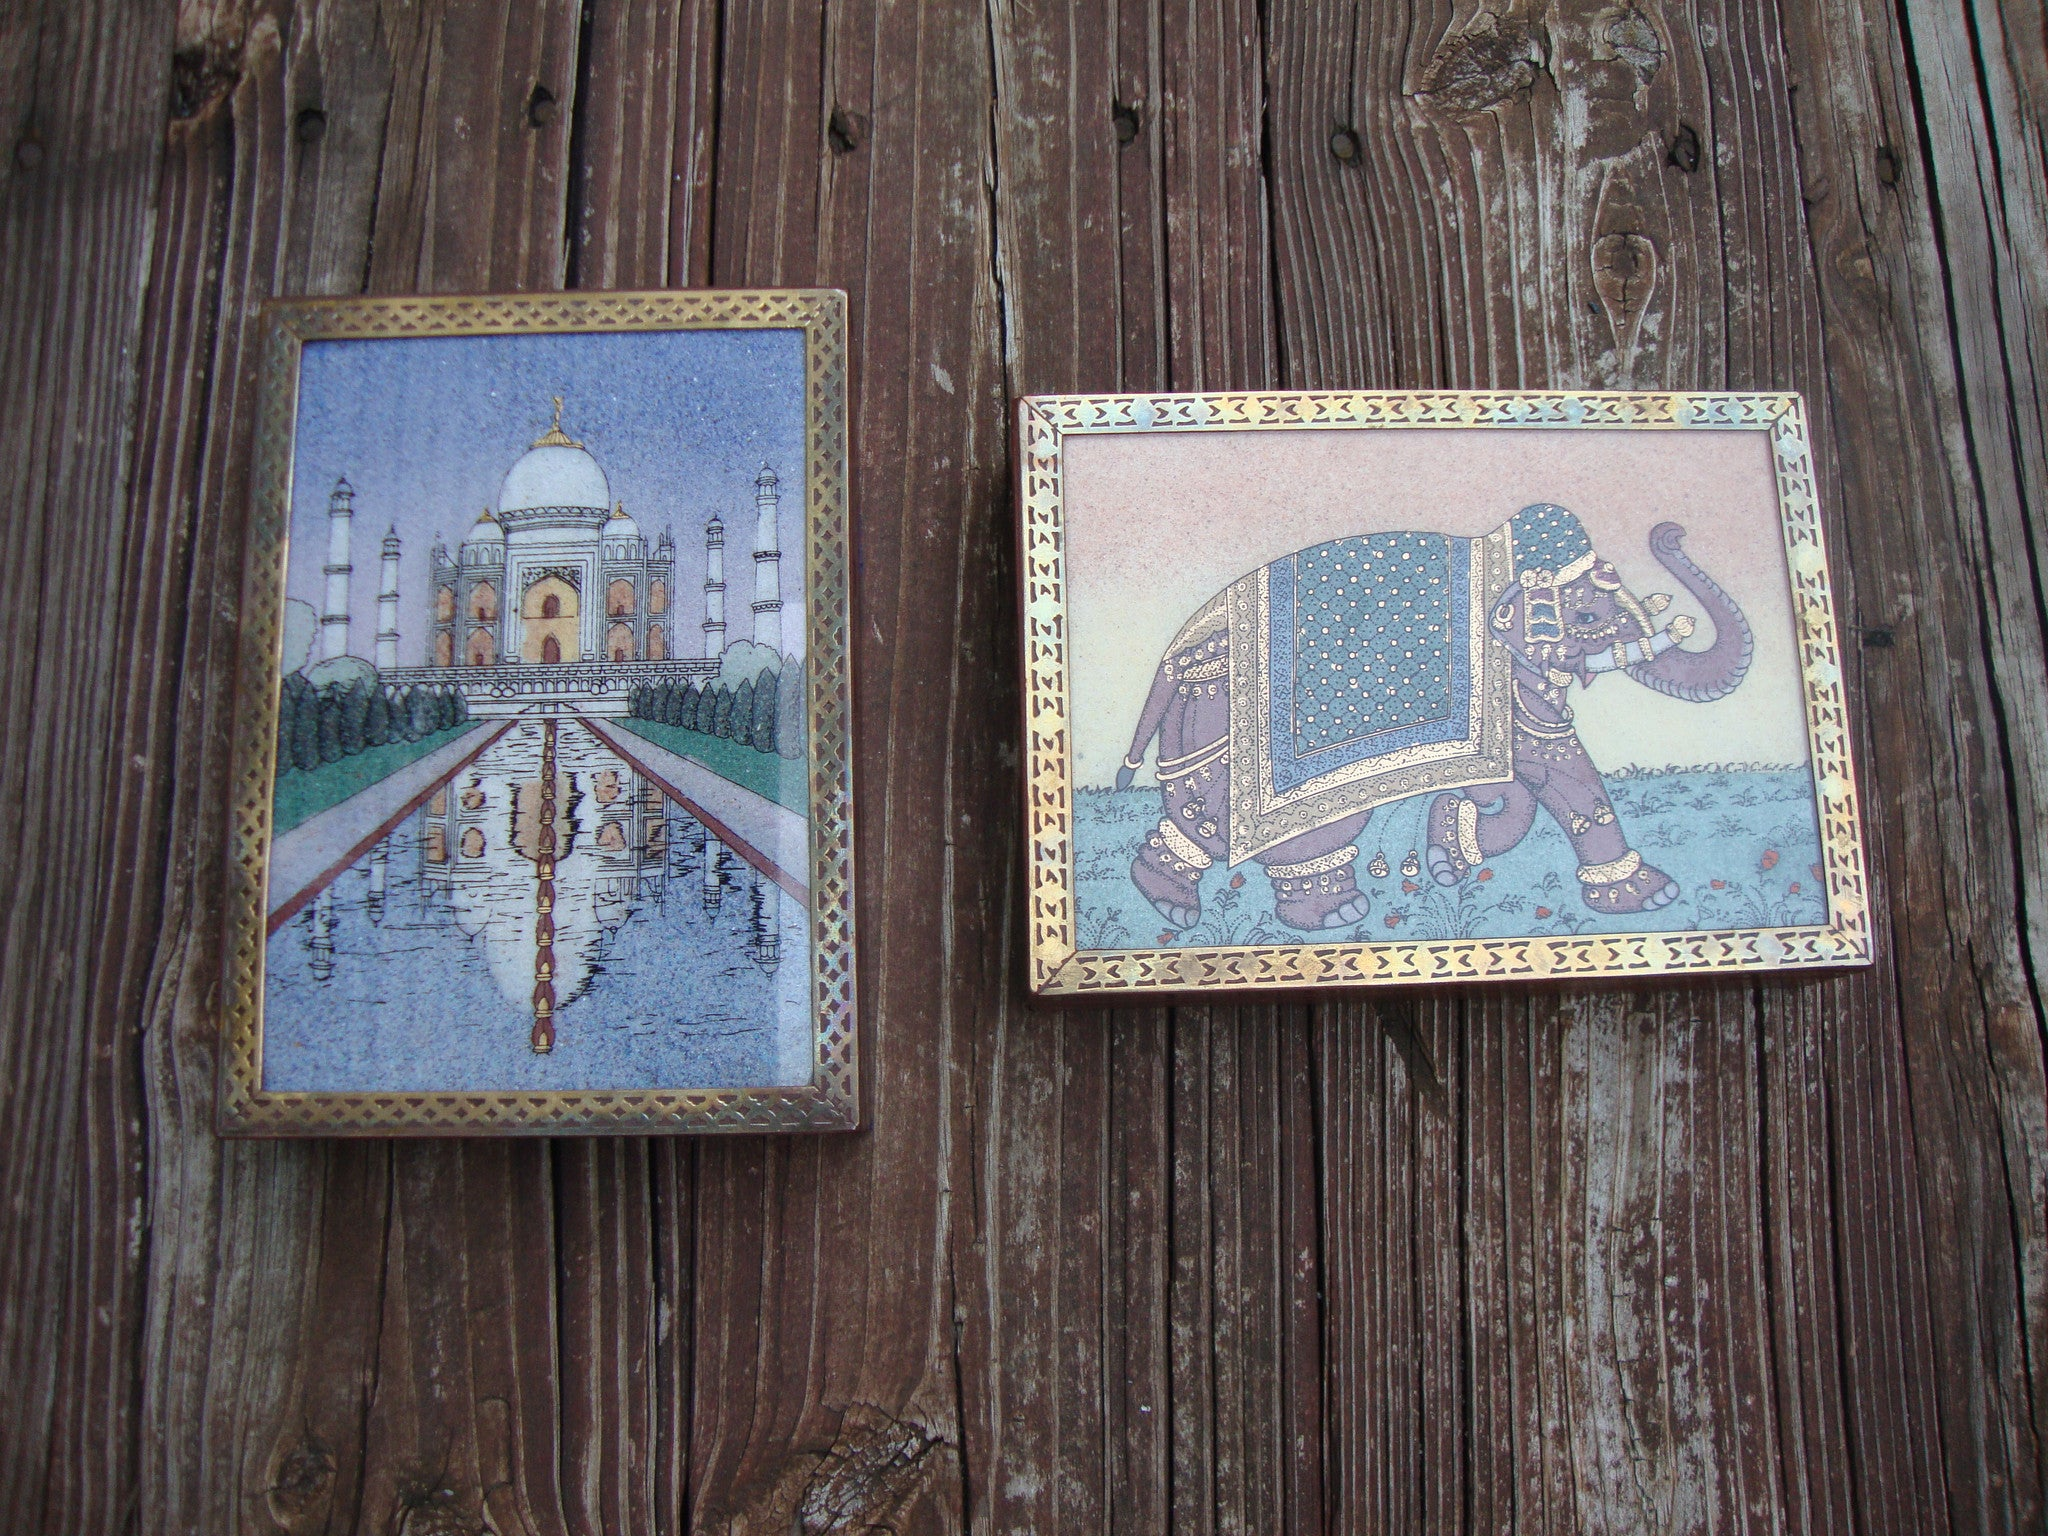 PAIR OF 2 VINTAGE INDIAN TAJ MAHAL JEWELRY/TRINKET BOX WOODEN W GEMSTONE PAINTIN